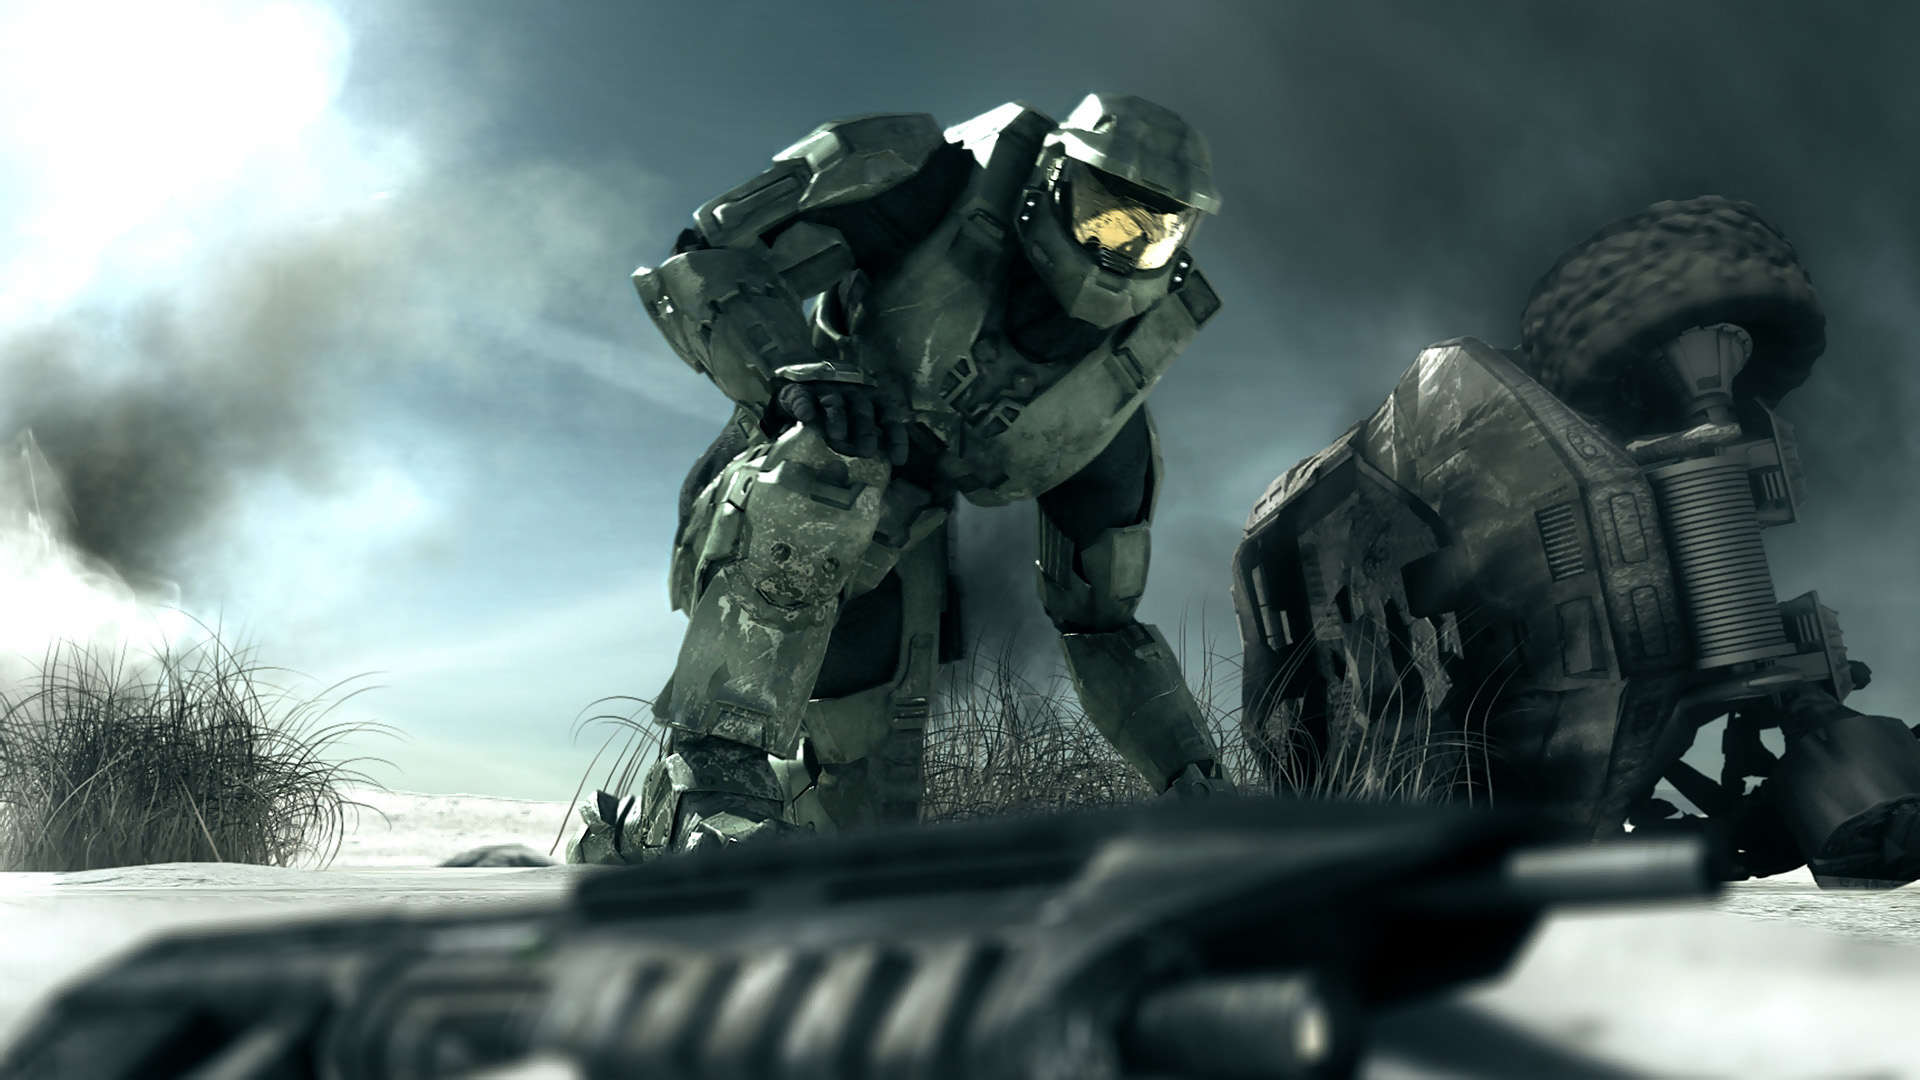 Halo Combat Evolved Computer Wallpapers Desktop Backgrounds 1920x1080